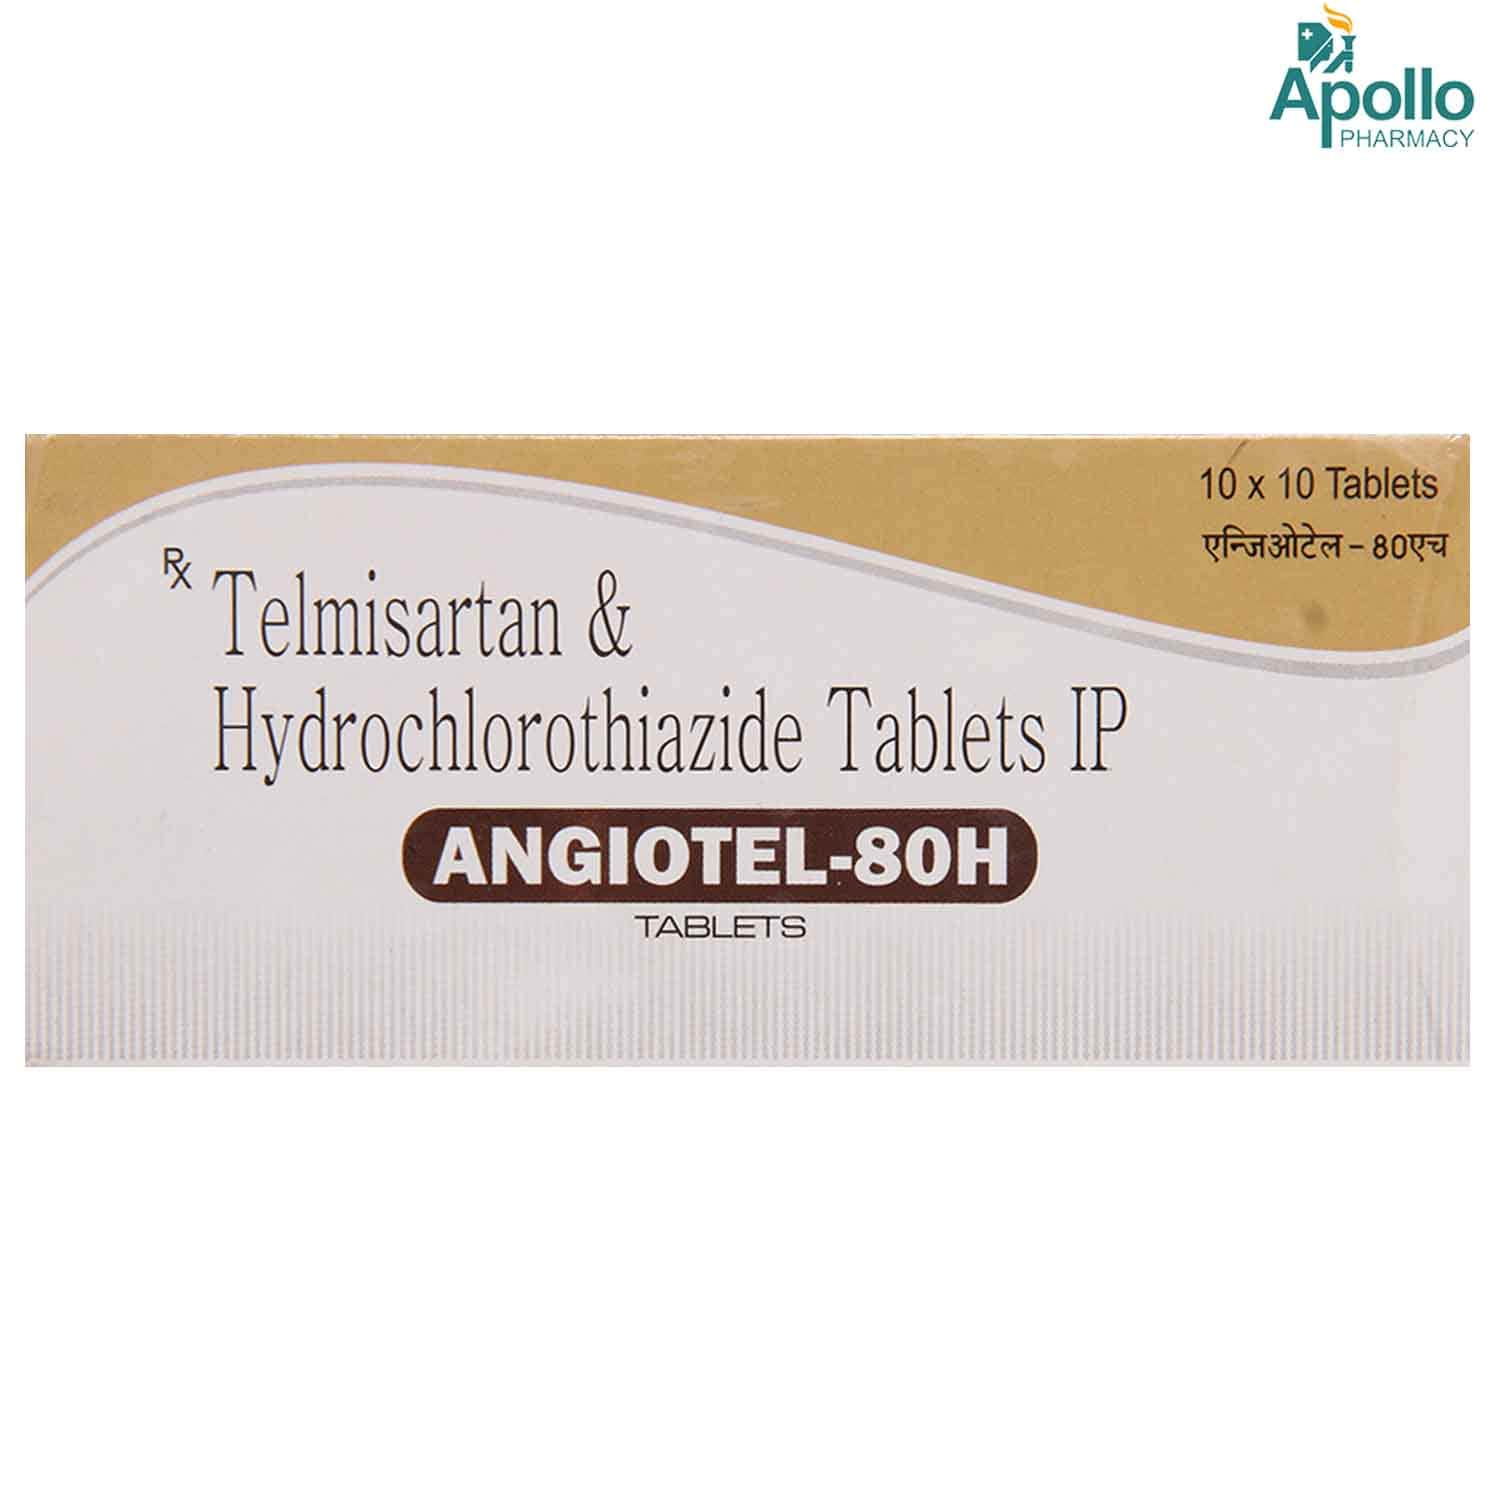 ANGIOTEL H 80MG TABLET